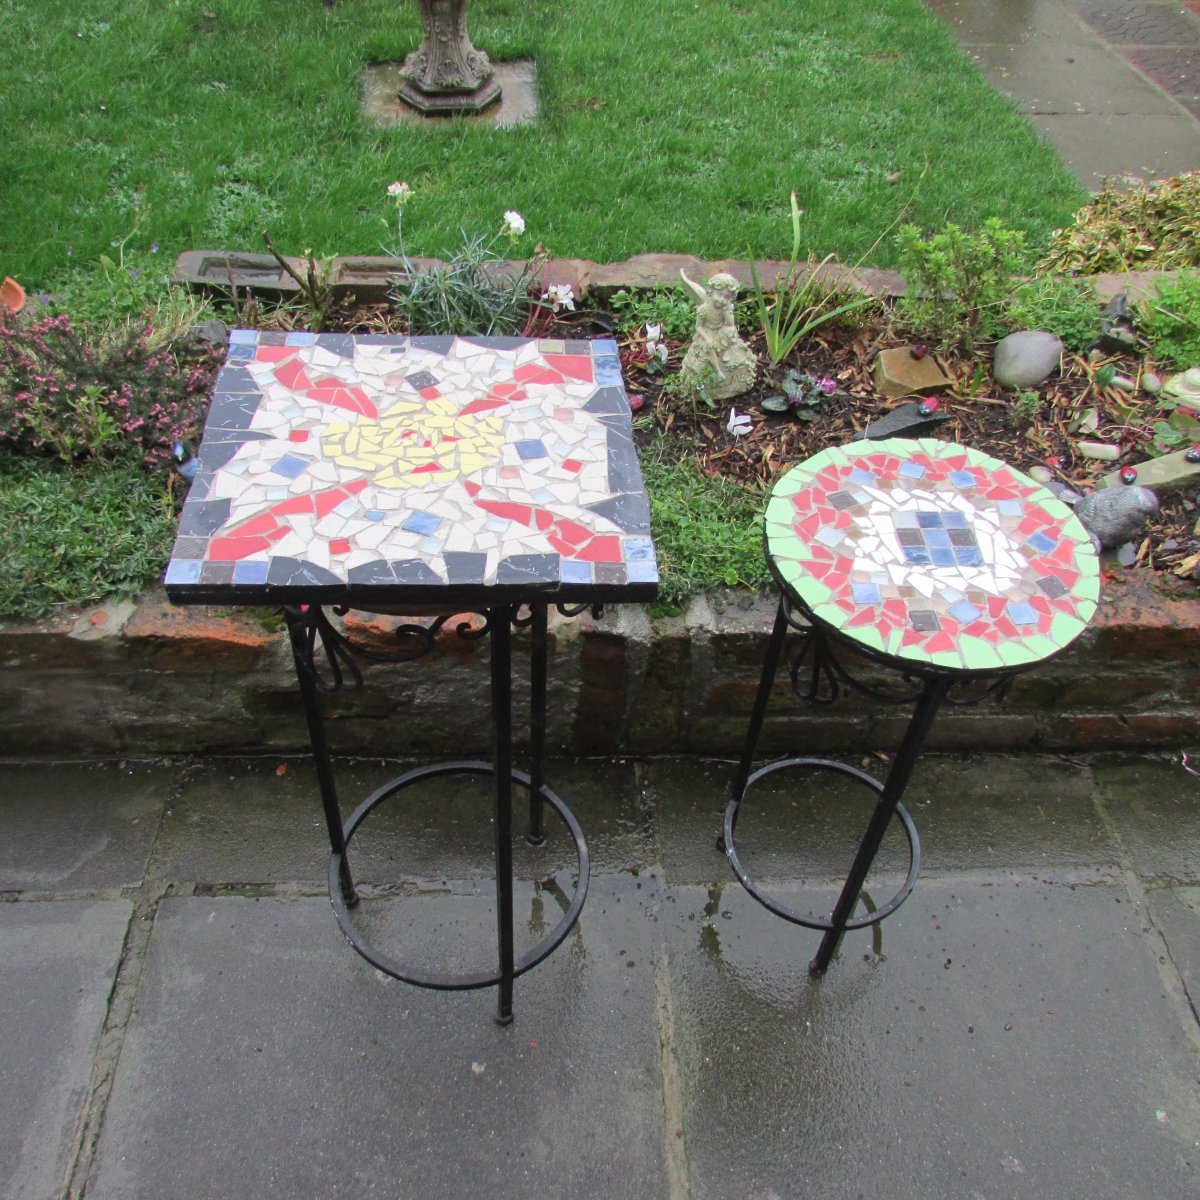 A Mosaic Tile Design for each Table